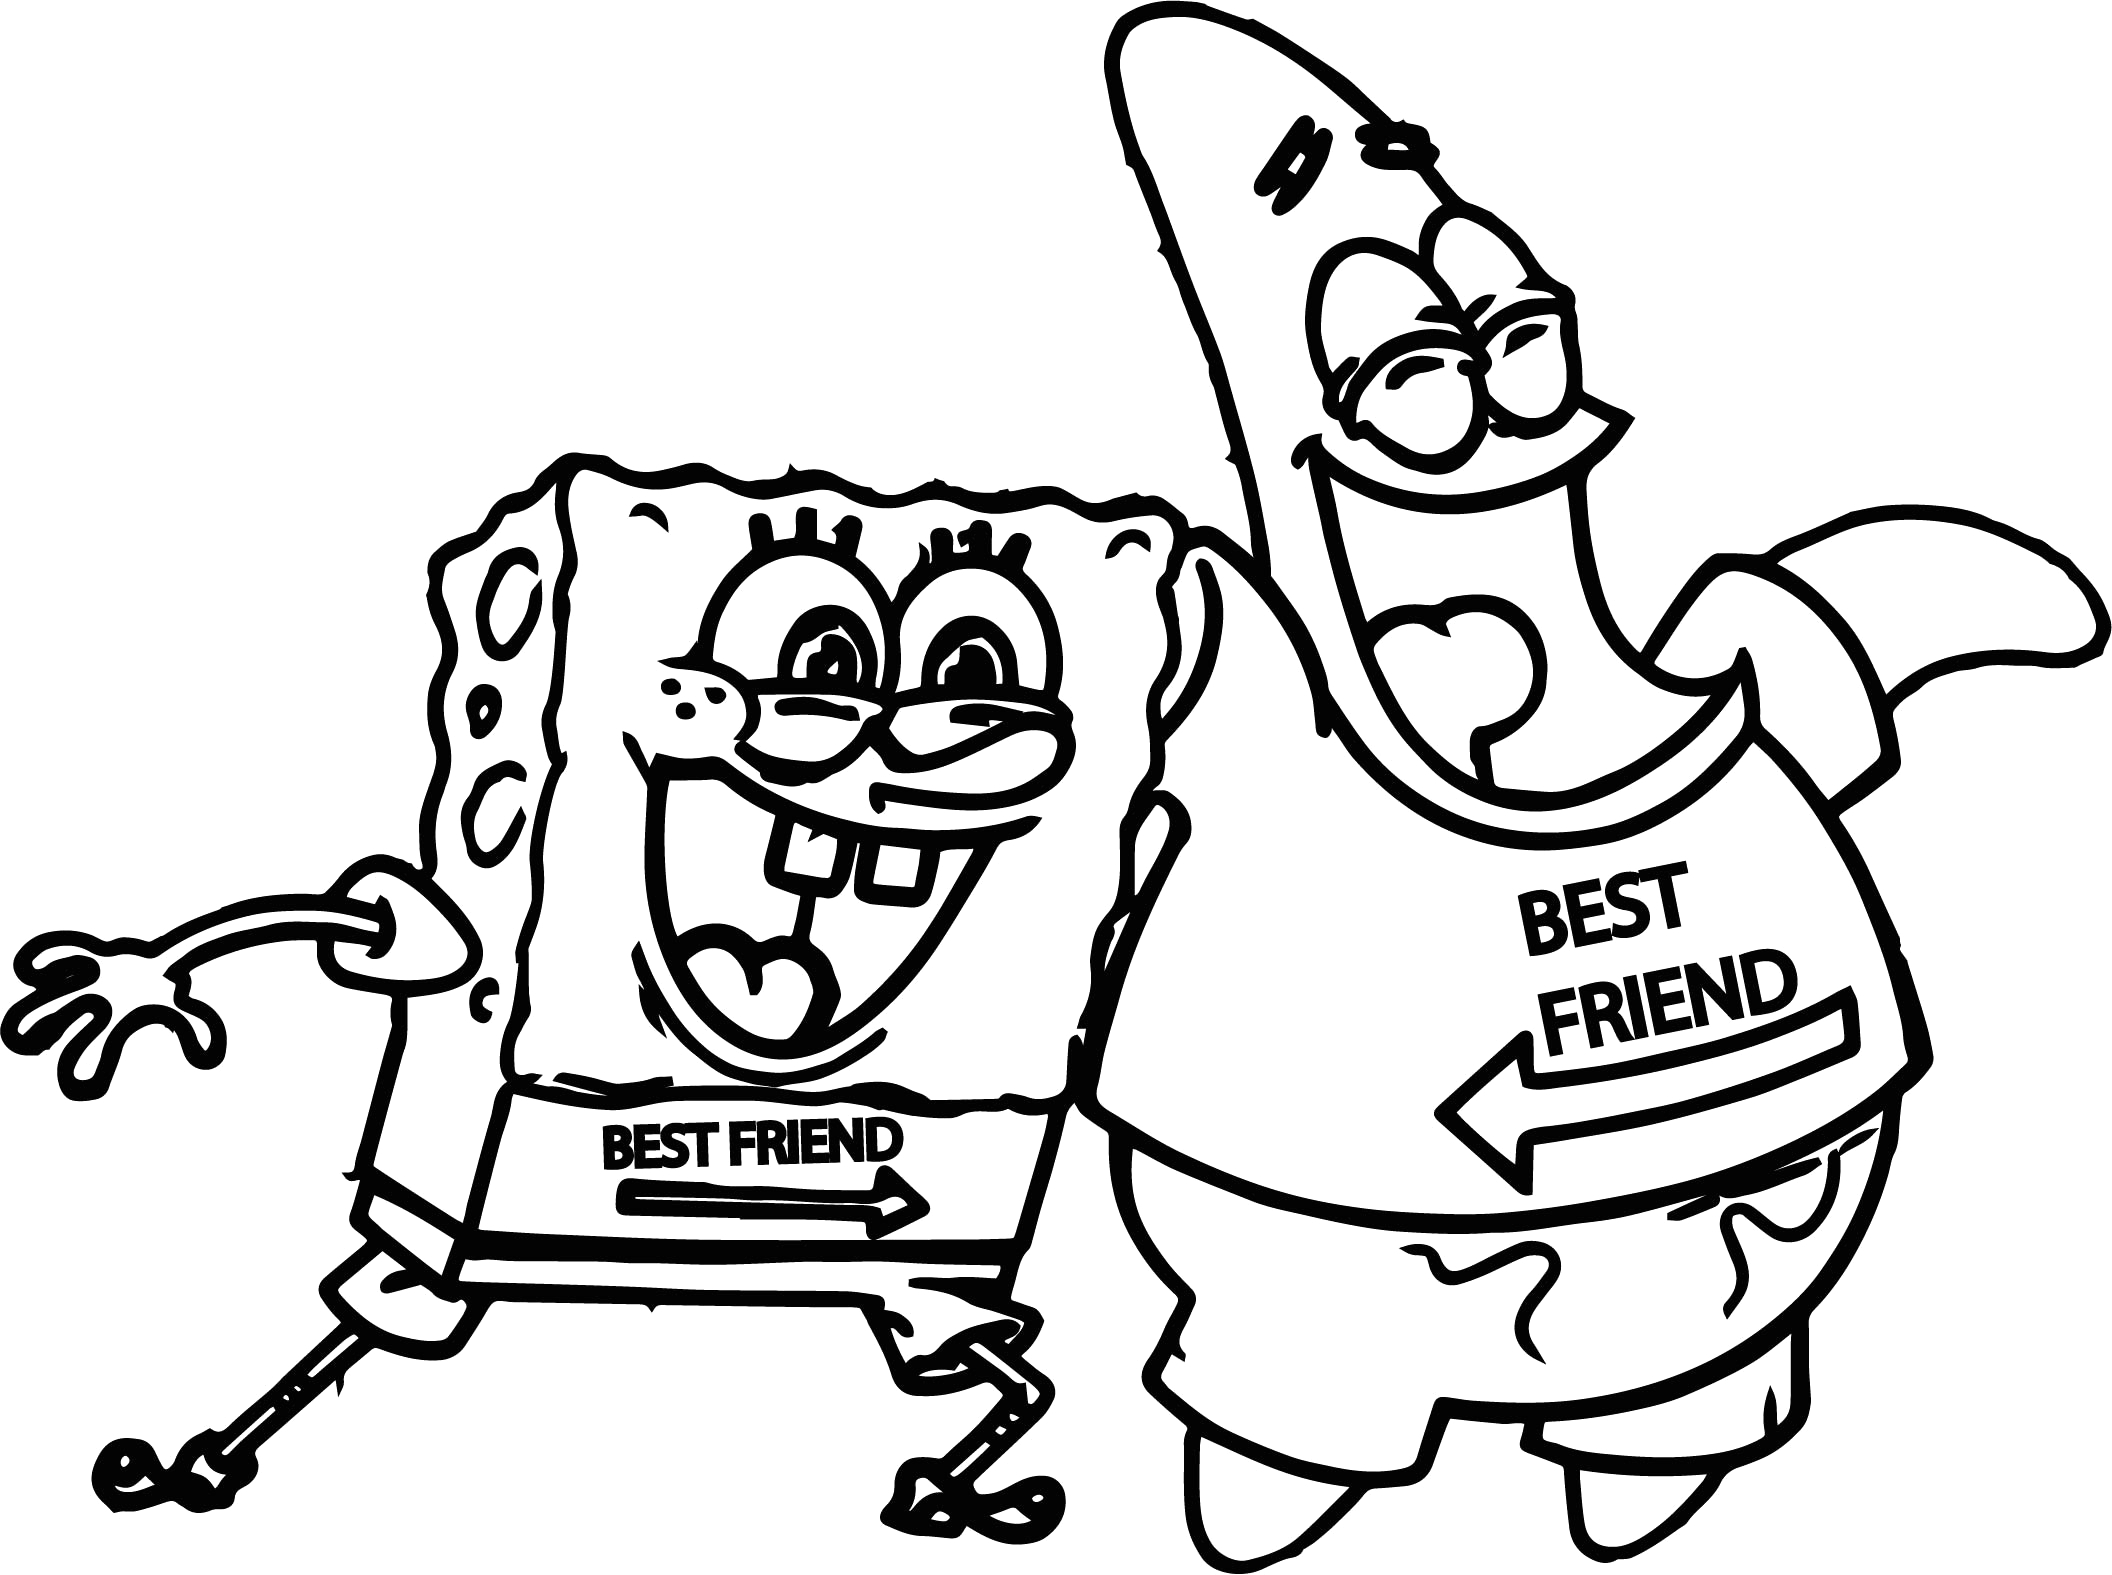 Spongebob and Patrick Best Friends Coloring Pages Sponge Sunger Bob Patrick Best Friends Coloring Page